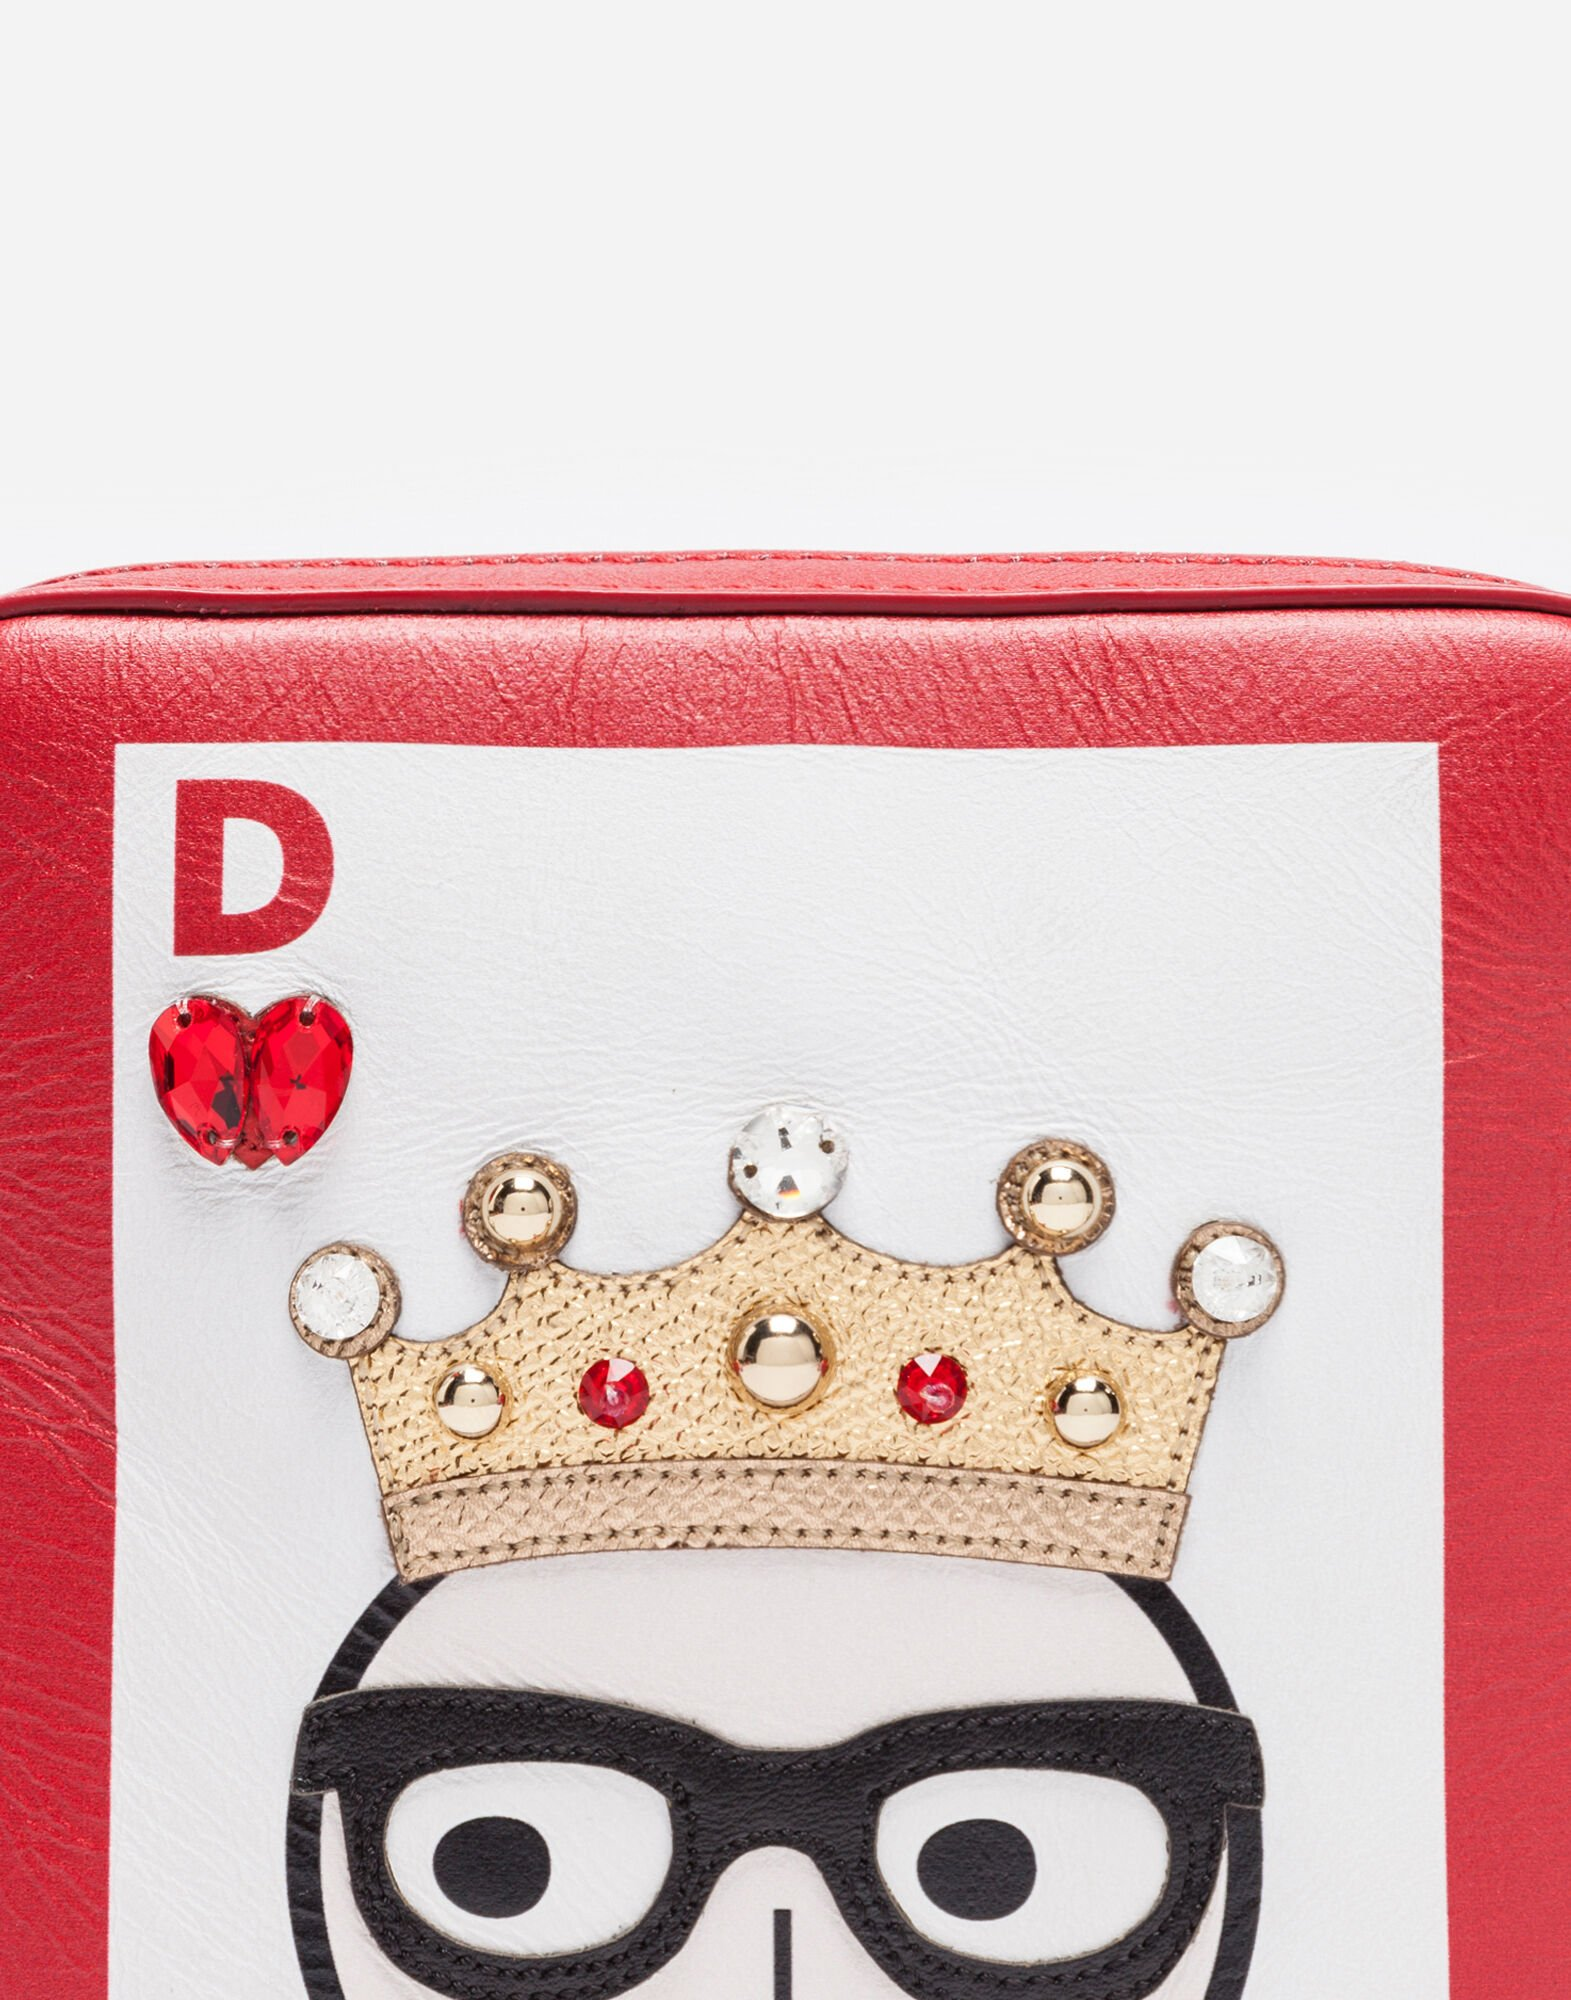 Dolce&Gabbana PRINTED LEATHER CROSS-BODY BAG WITH APPLIQUÉS